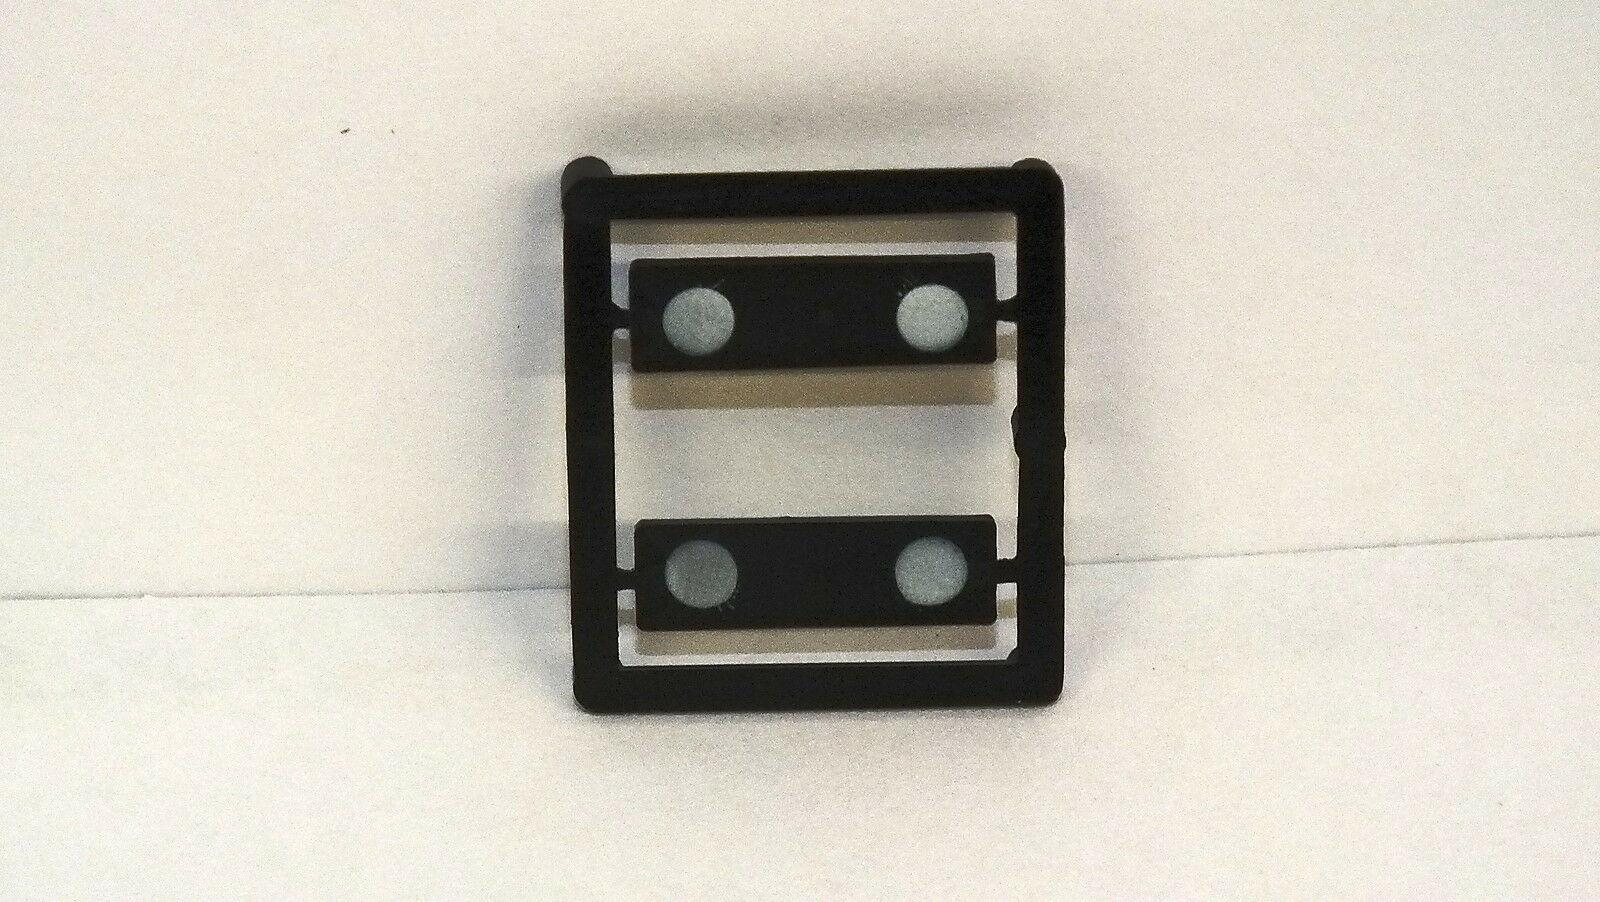 S9668/3  # hornby triang spares class 25 domino  headcodes  H7C